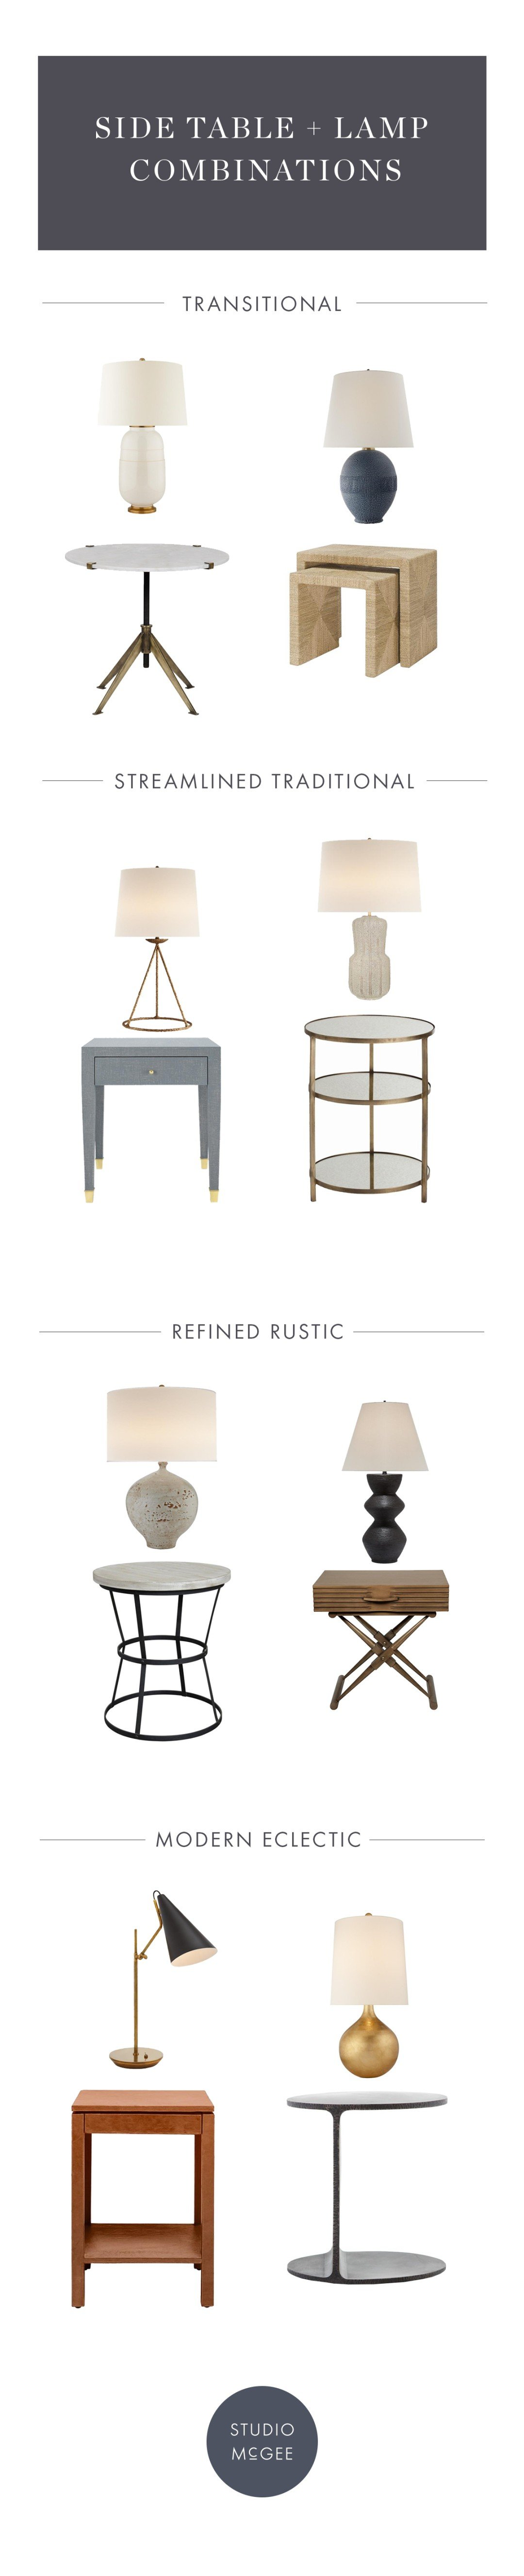 side table lamp combinations zane accent curated with newcomb toulon devyn adjustable small coffee legs black and mirrored nightstand tiffany style dragonfly kitchen prep full